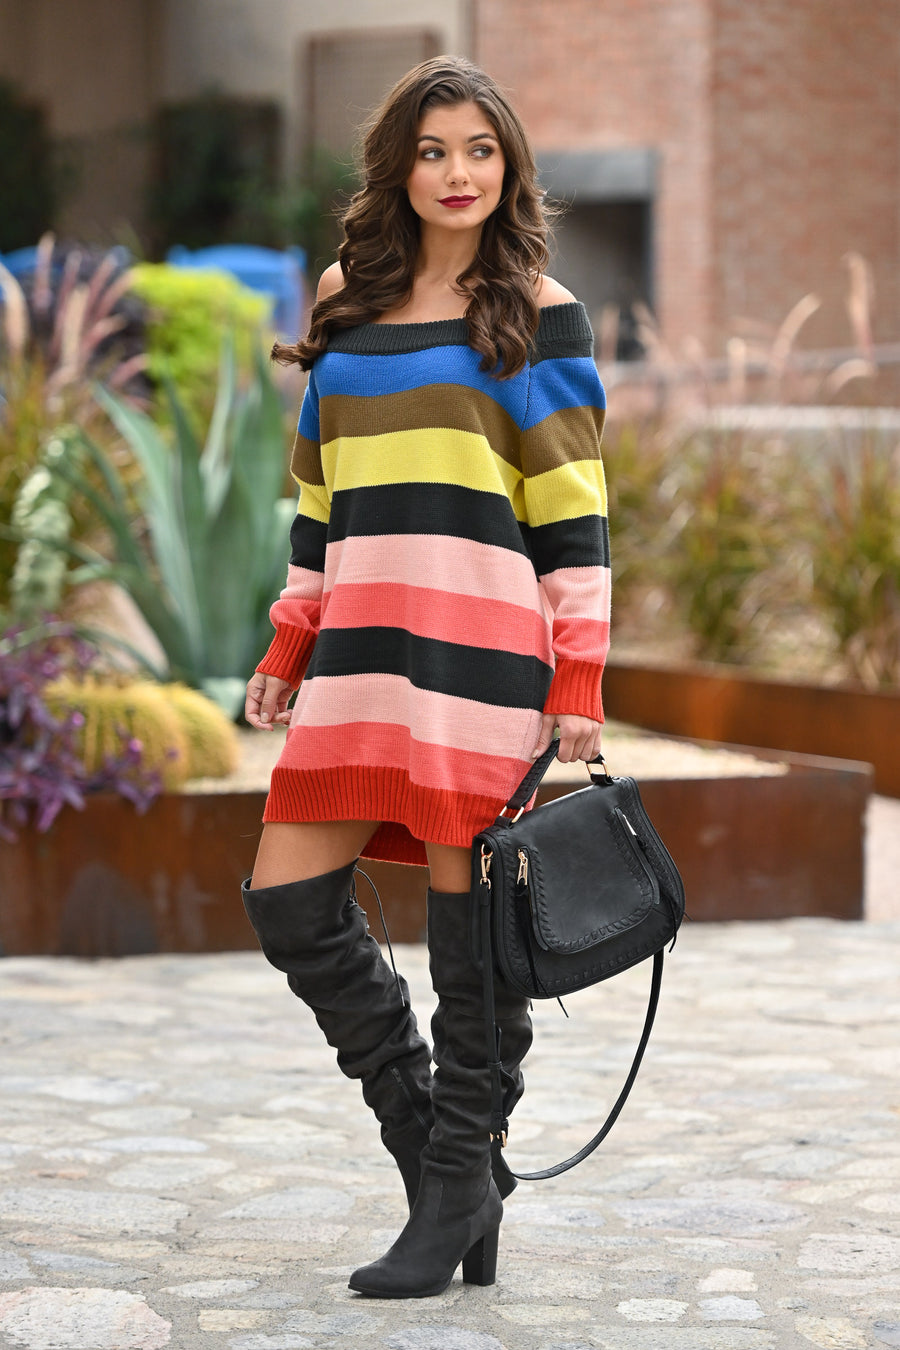 Express Yourself Color Block Sweater Dress - Multicolor colorful vibrant sweater dress, Closet Candy Boutique 1